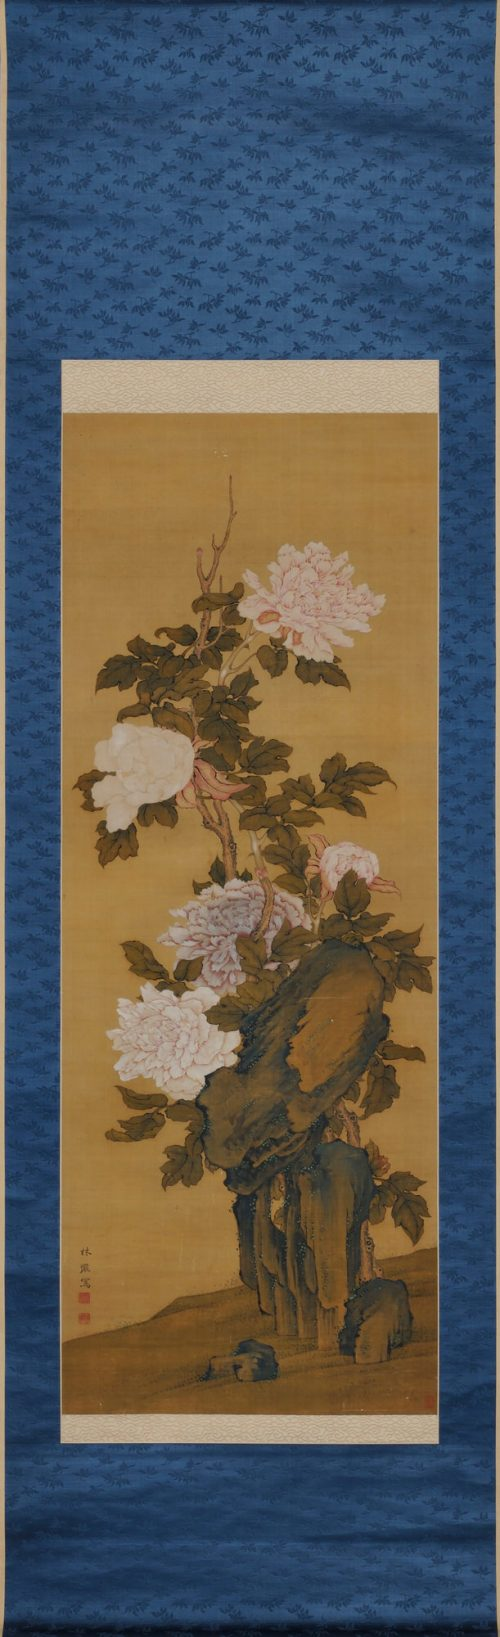 Hayashi Chisen, Japanese Nanpinha scroll painting, full scroll image.